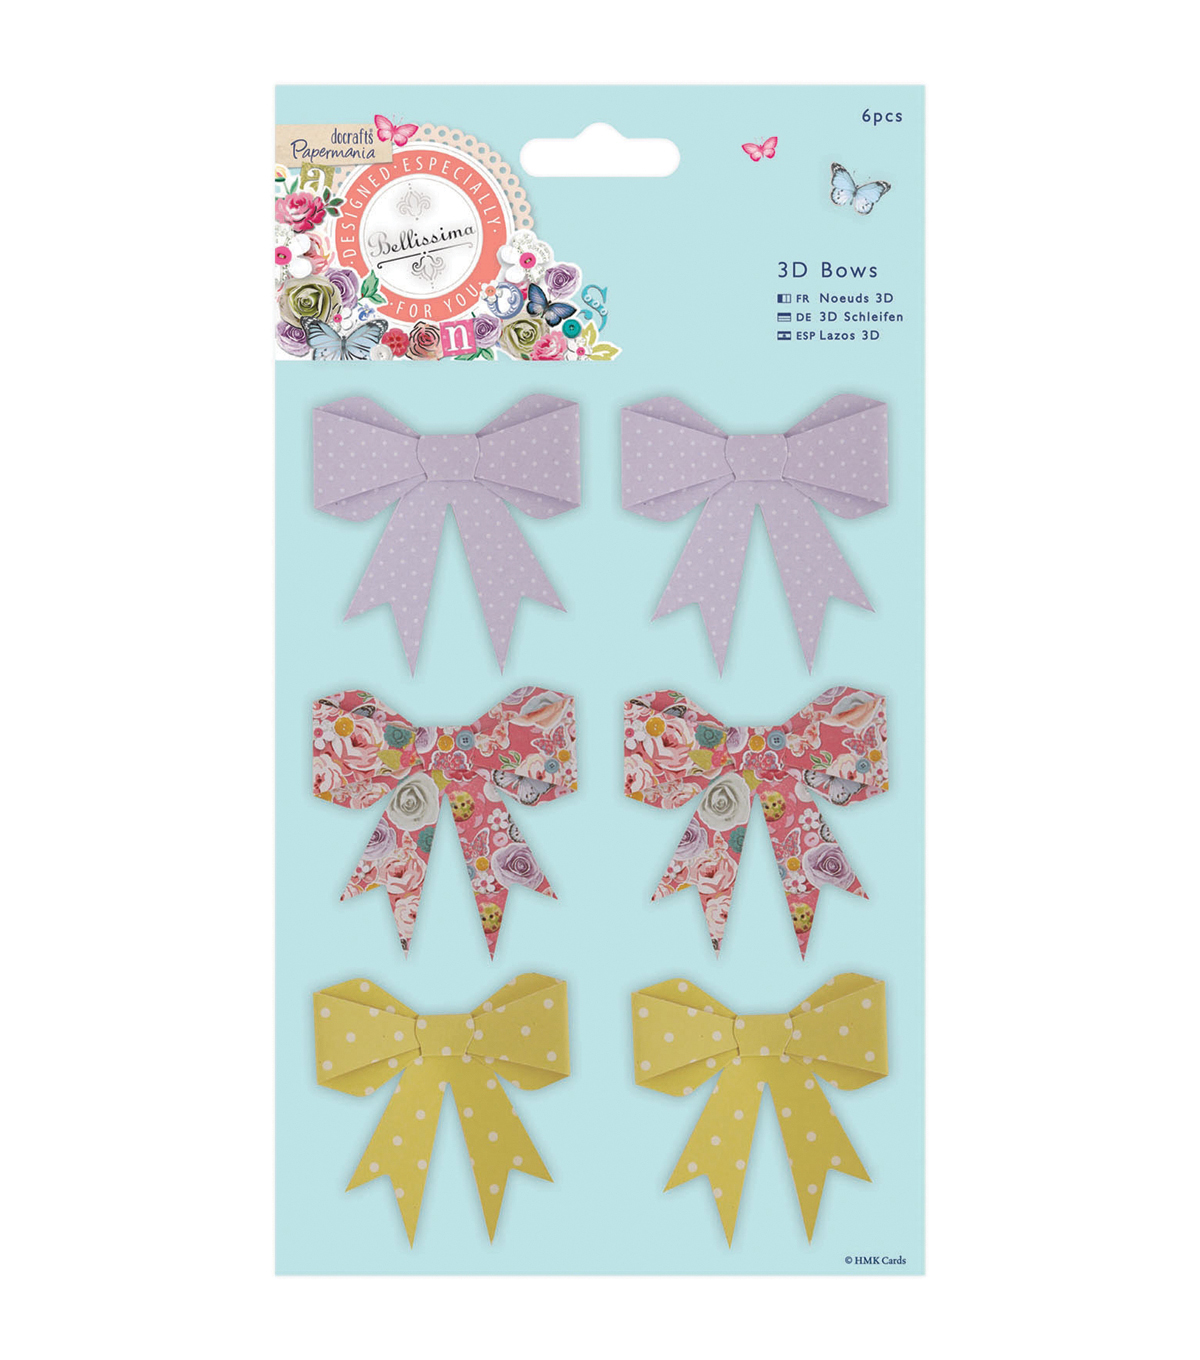 Papermania Bellissima 3D Bows